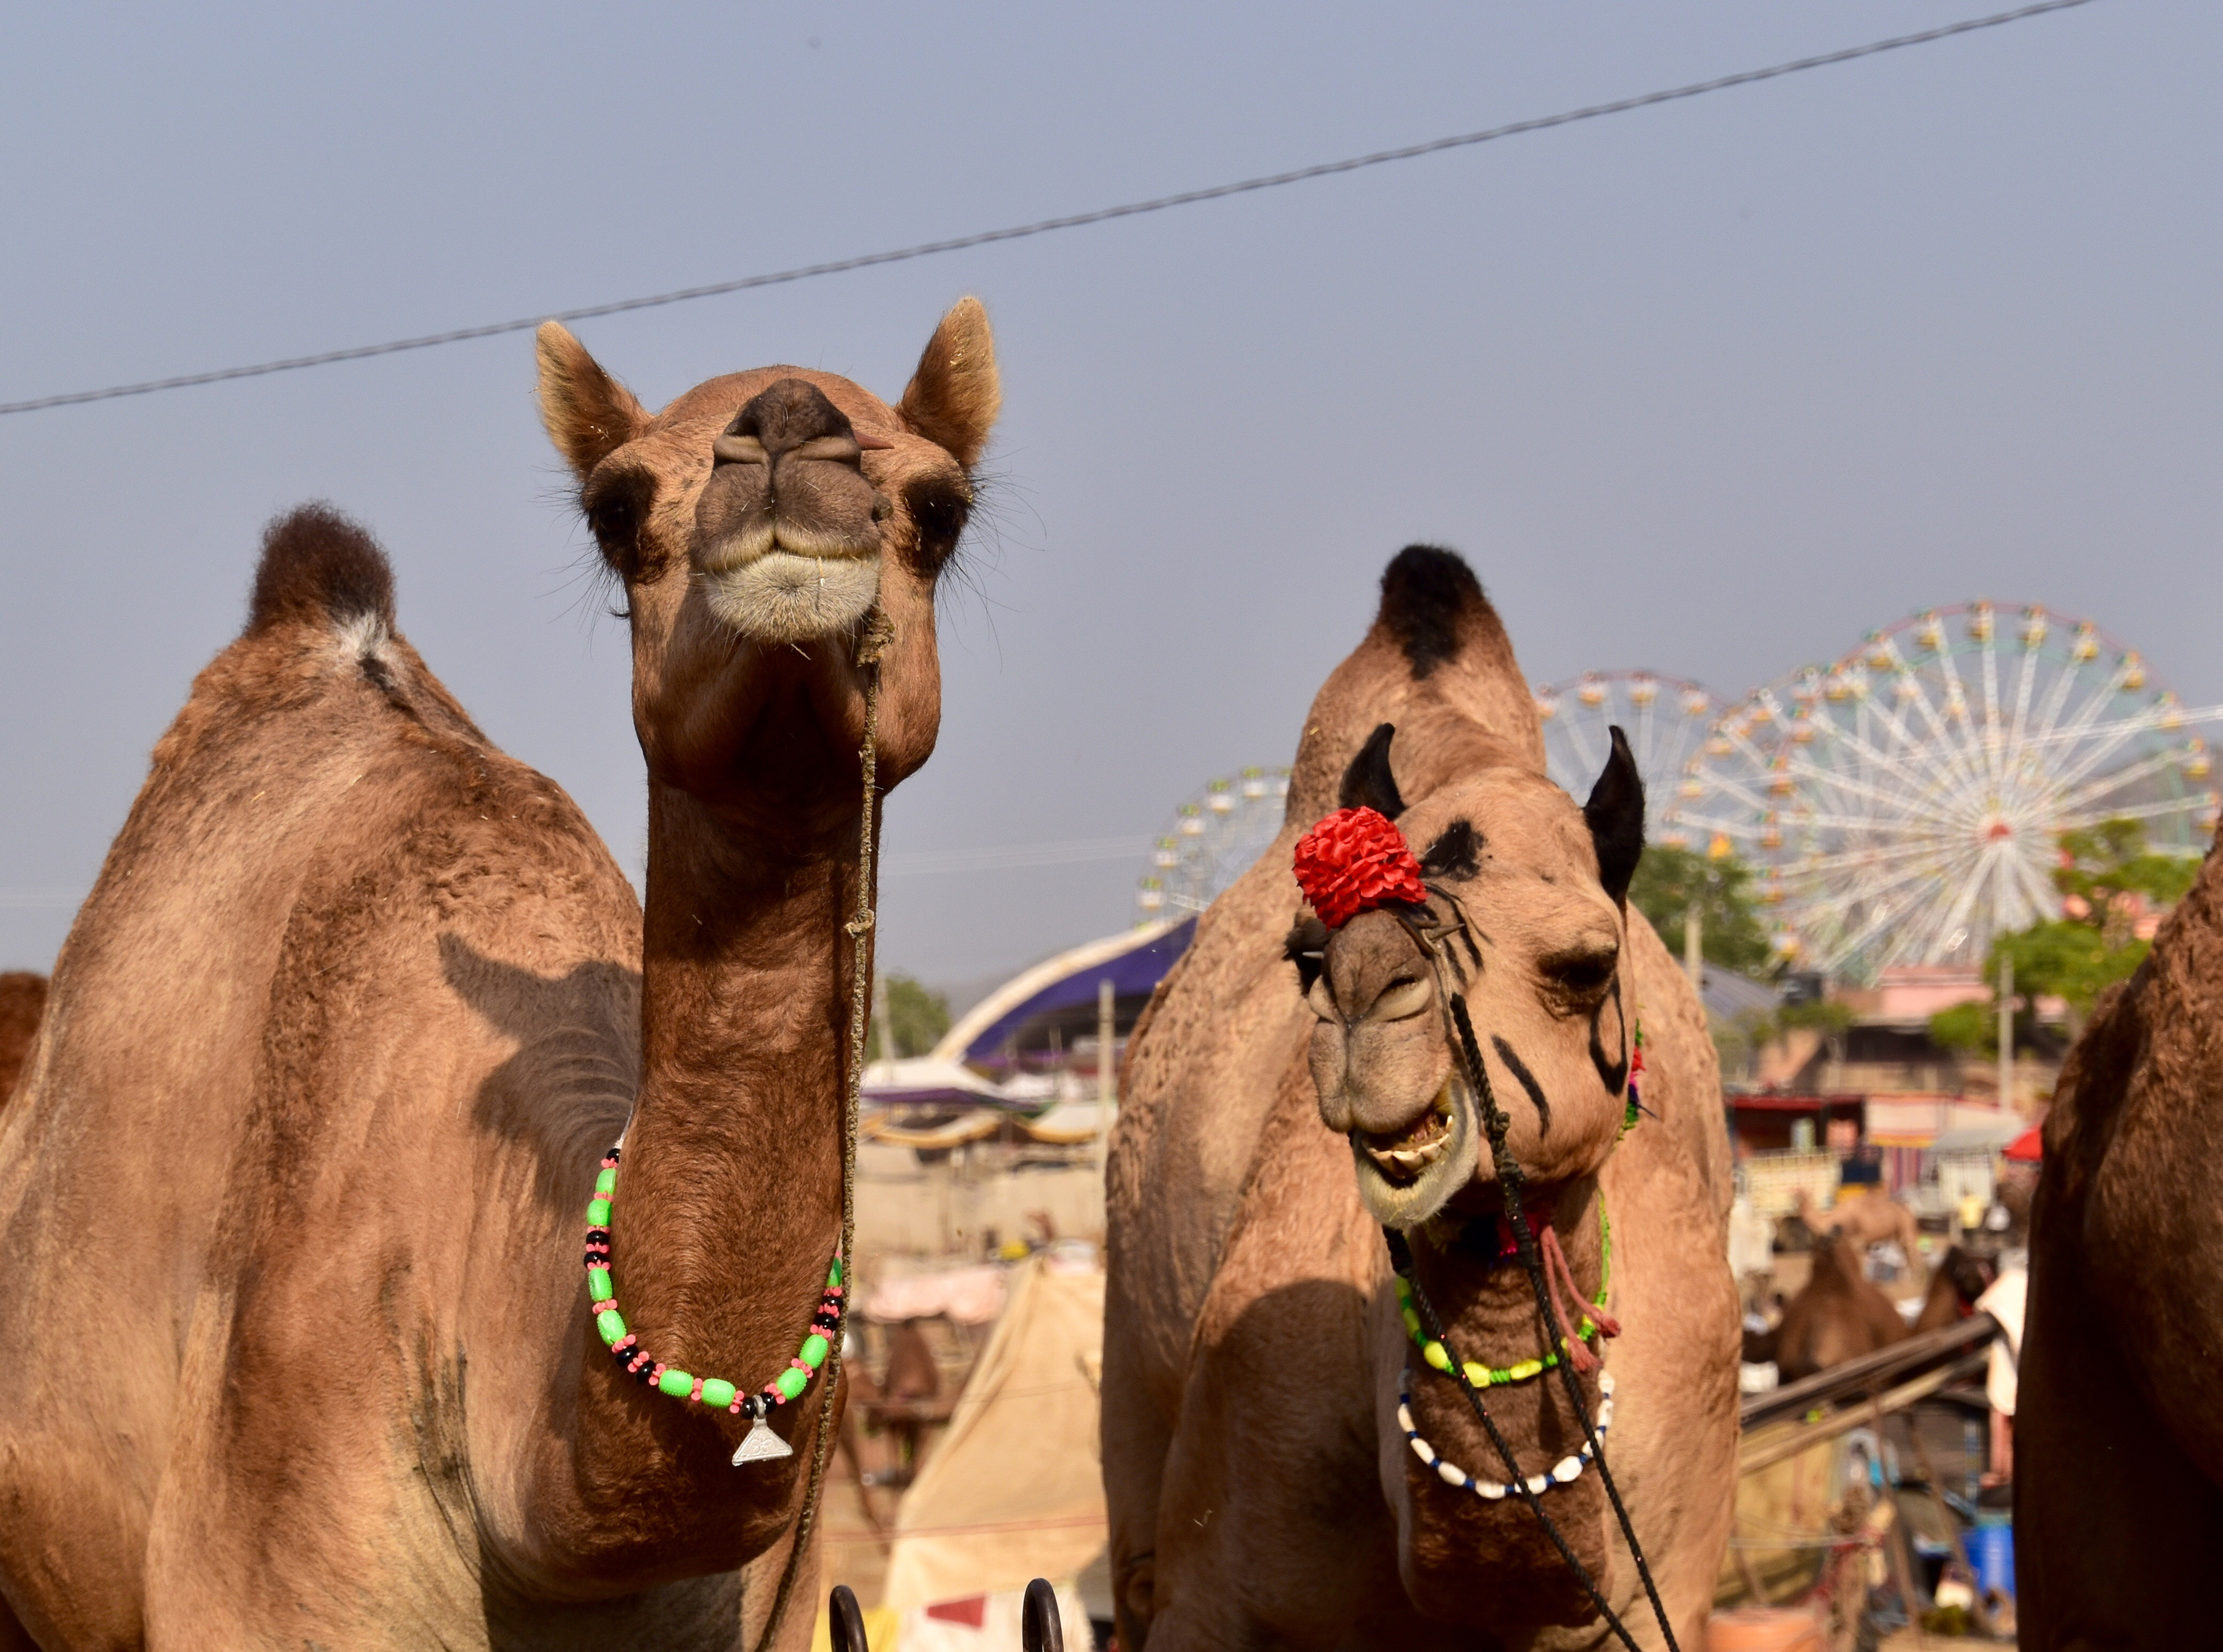 Camels hanging out